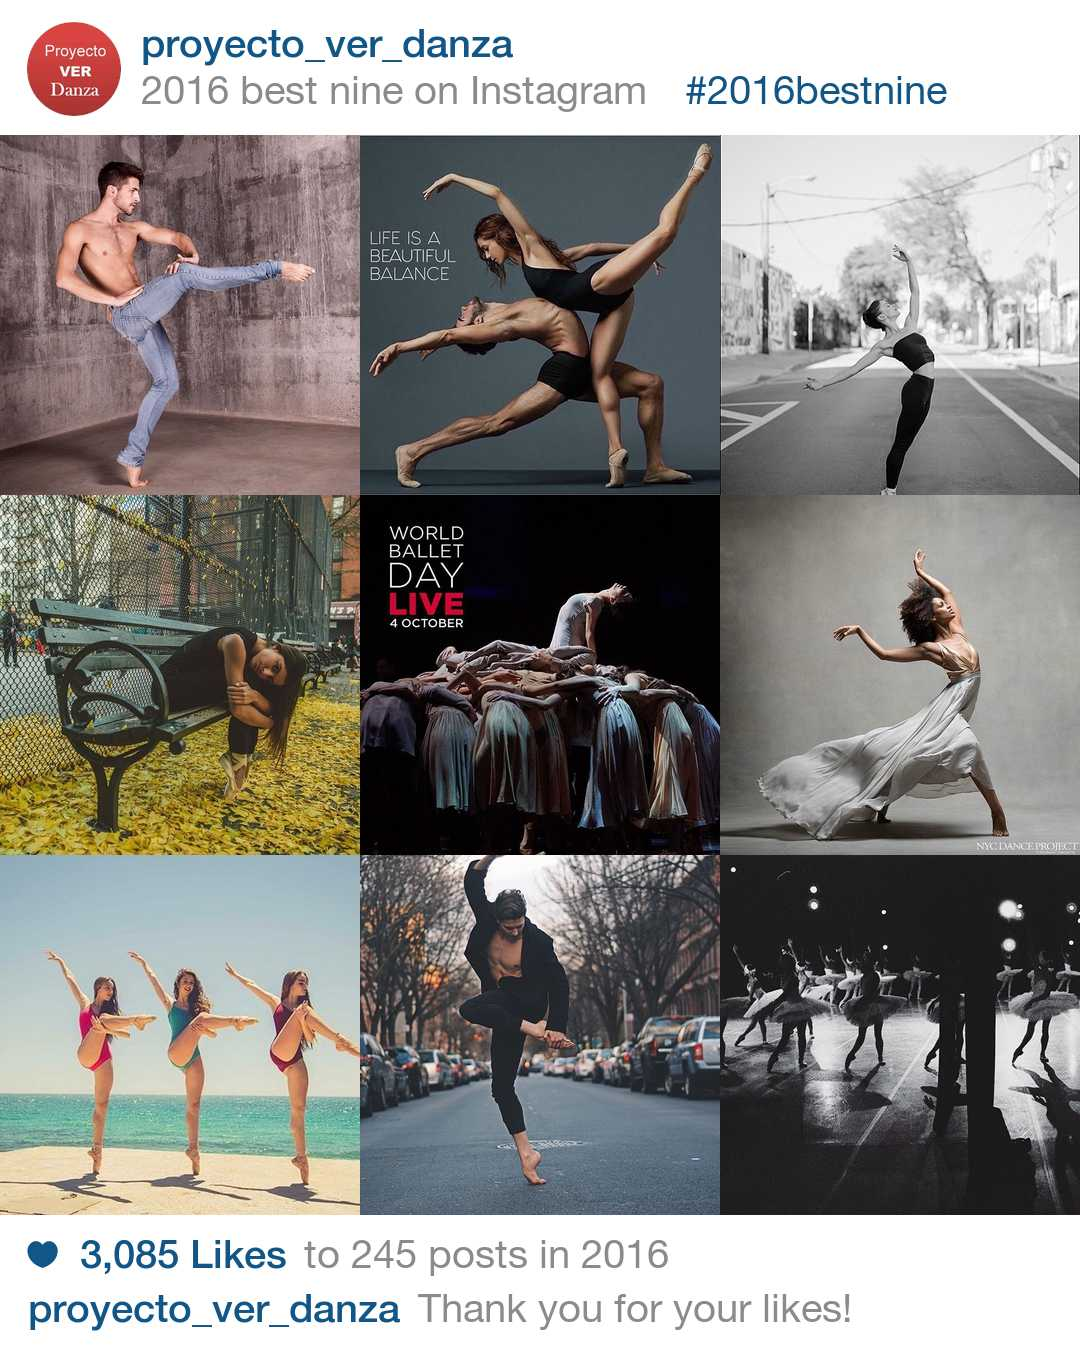 proyecto_ver_danza_full-best-nine-2016